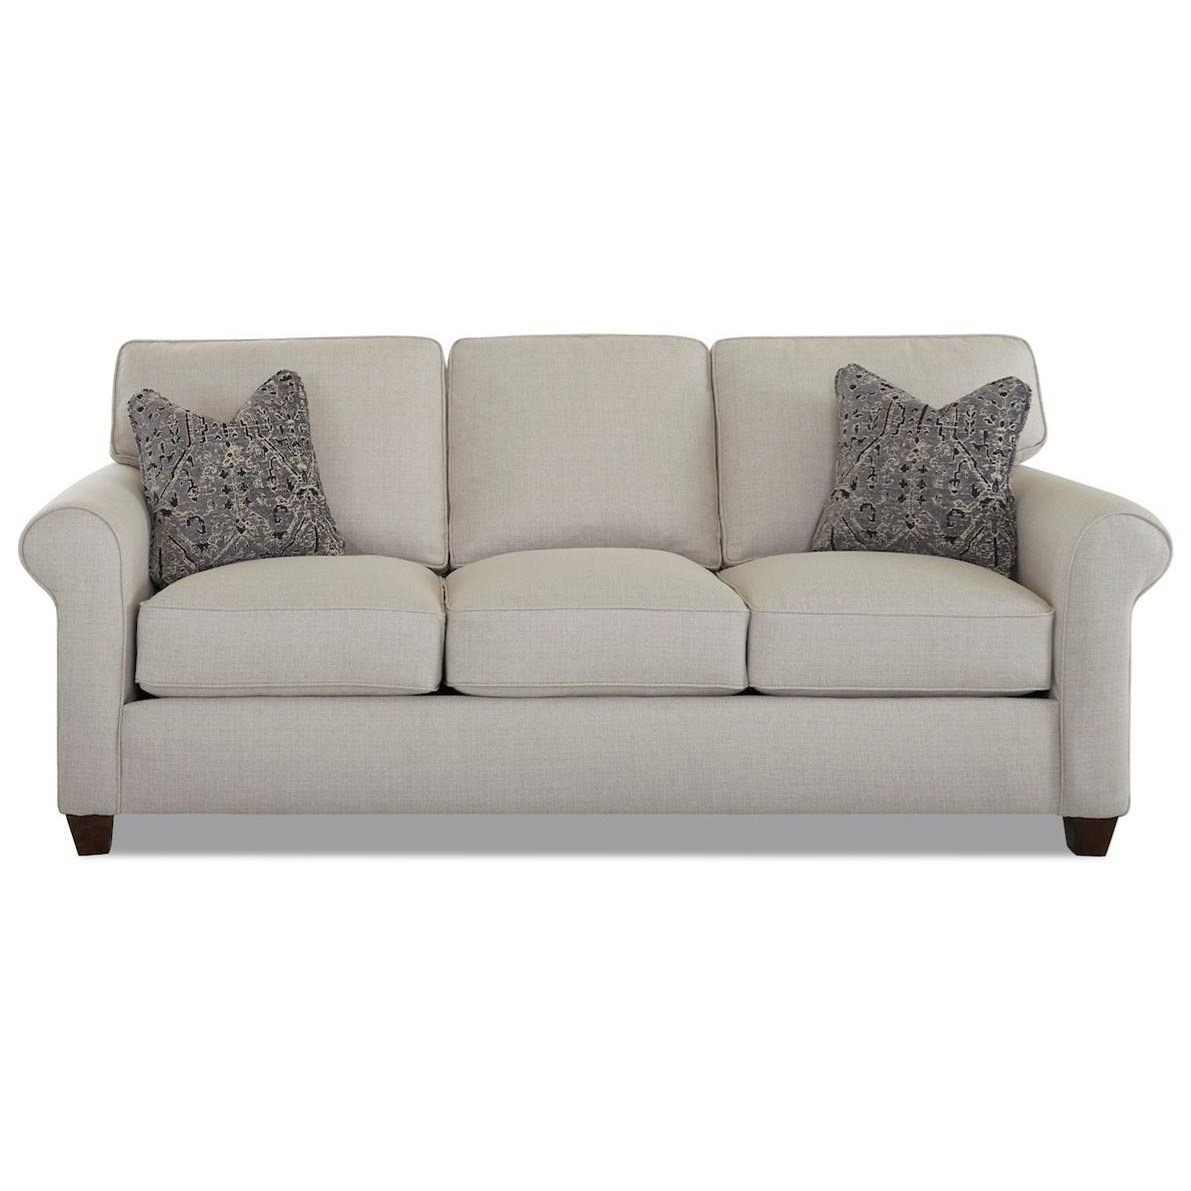 Lillington Distinctions  Extra Large Queen Enso Sleeper Sofa by Klaussner at Johnny Janosik